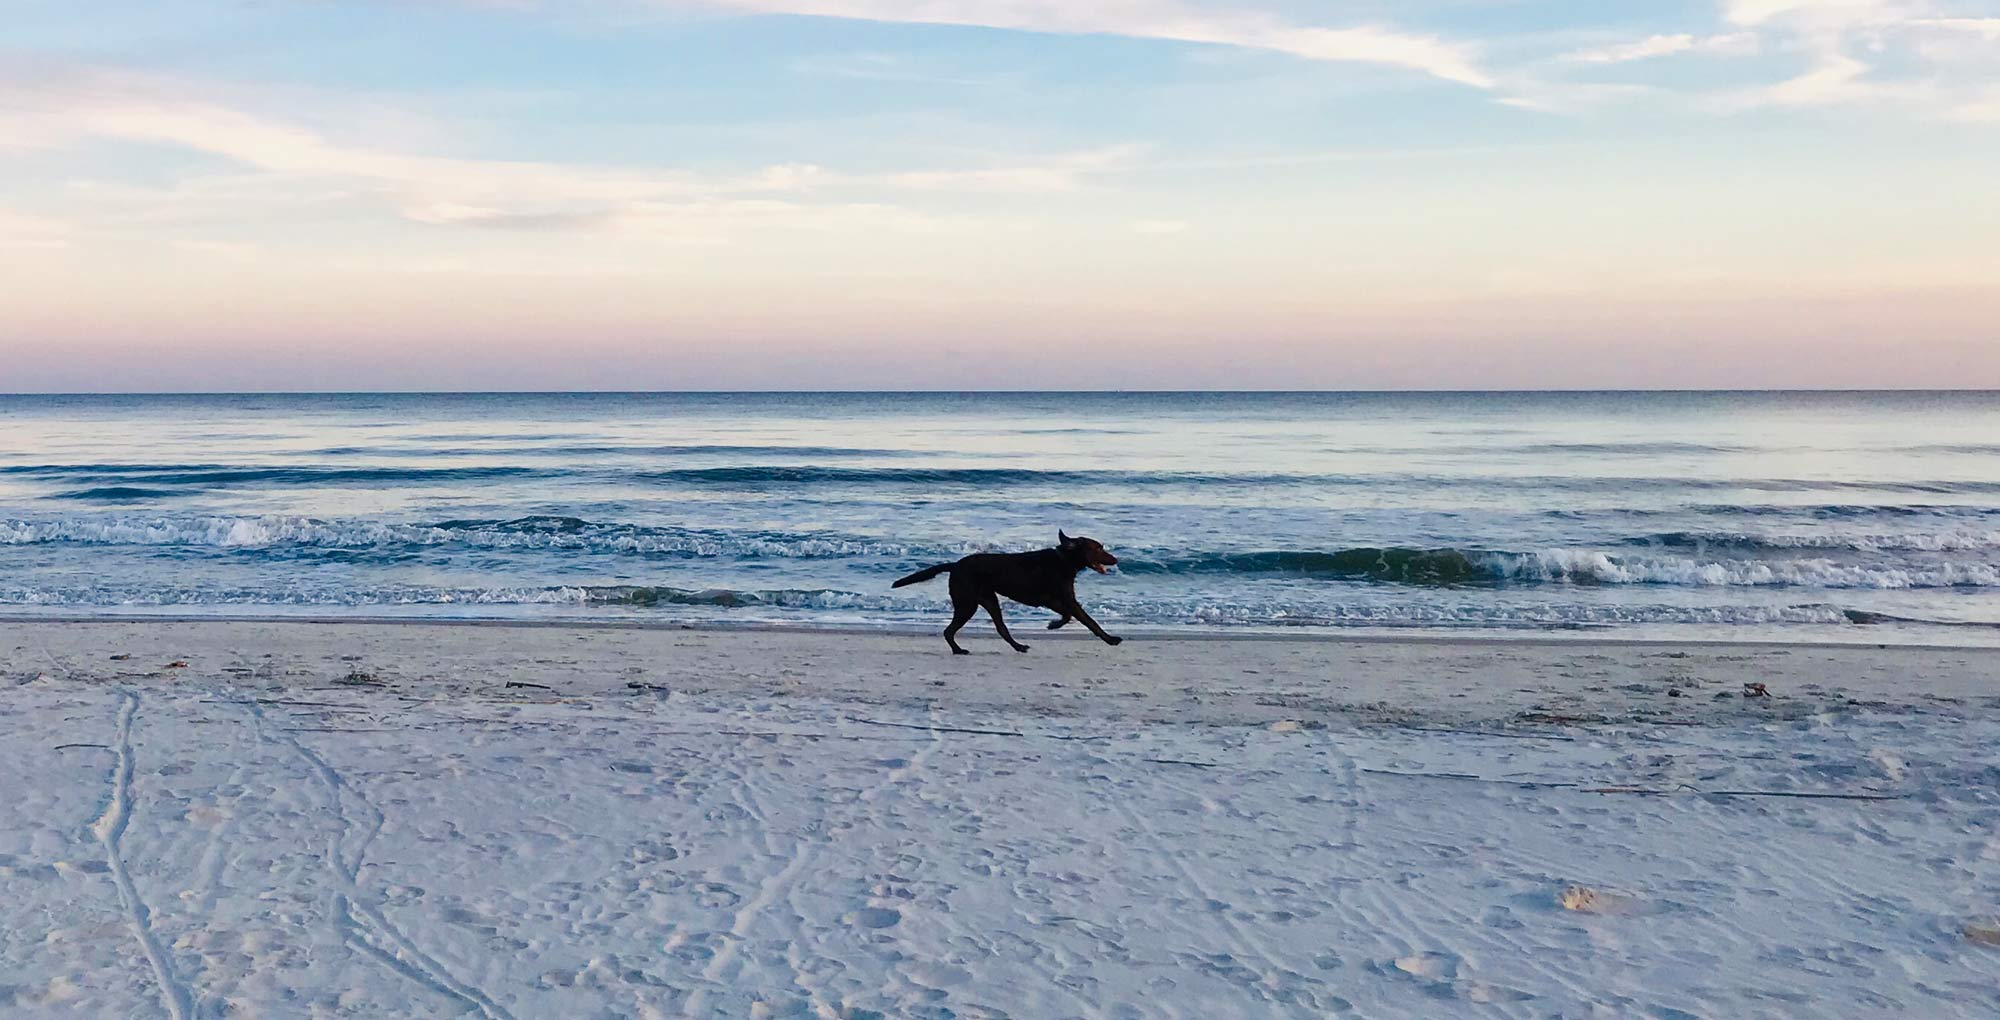 Dog On The Run From Forest Beach to Sea Pines